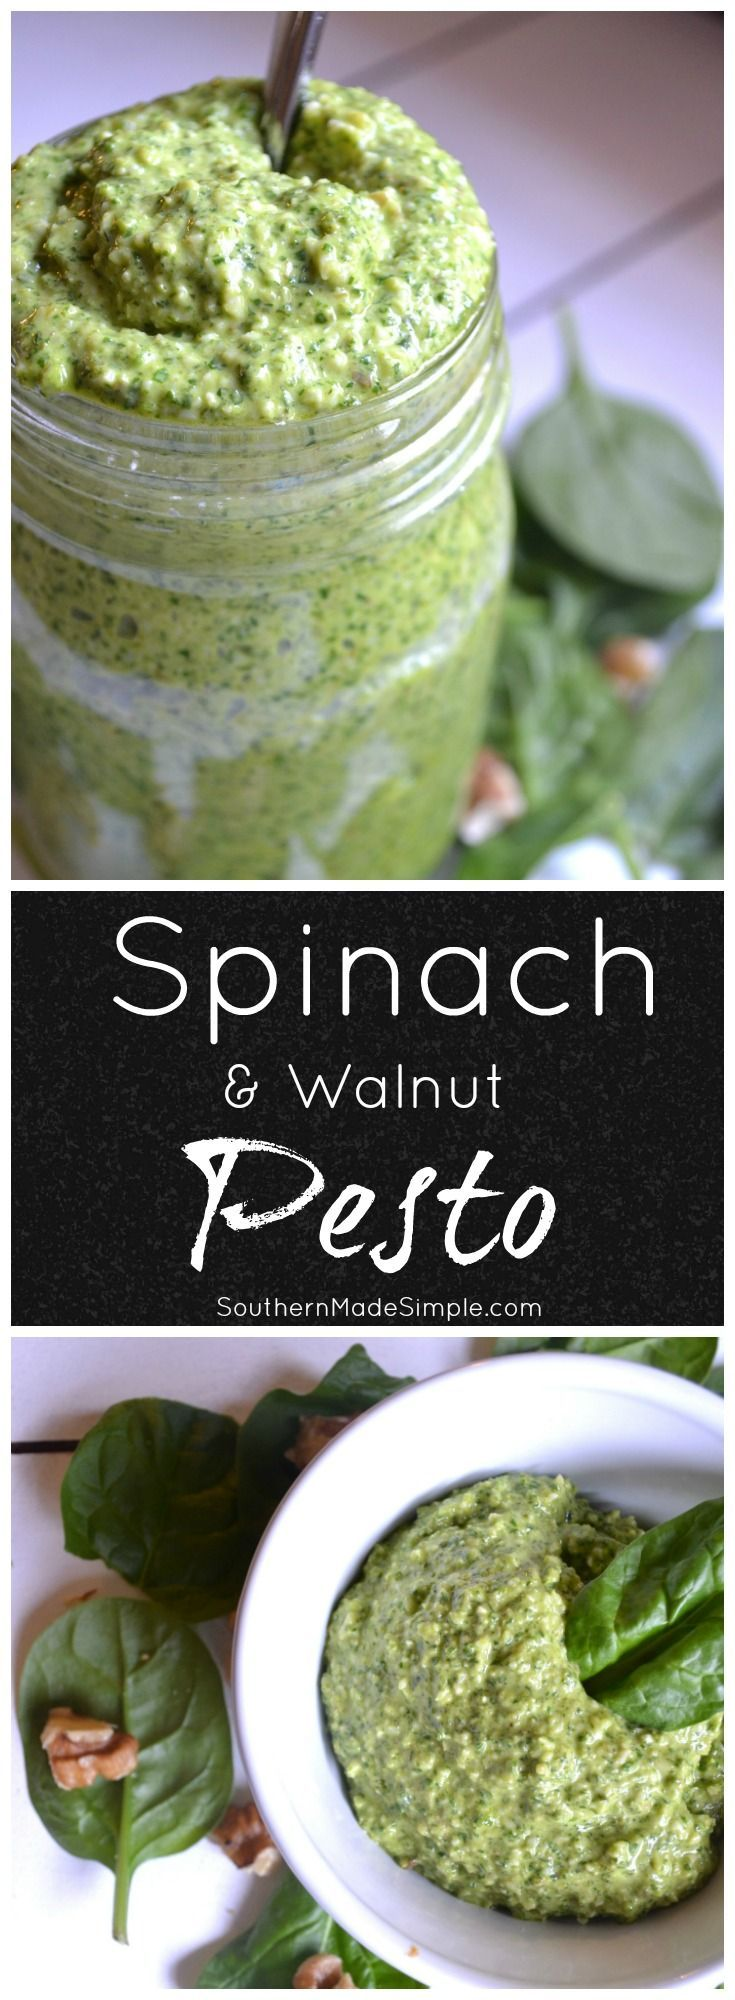 Have some extra spinach that needs using up? Whip up a batch of this creamy and delicious Spinach and walnut pesto in just minutes!